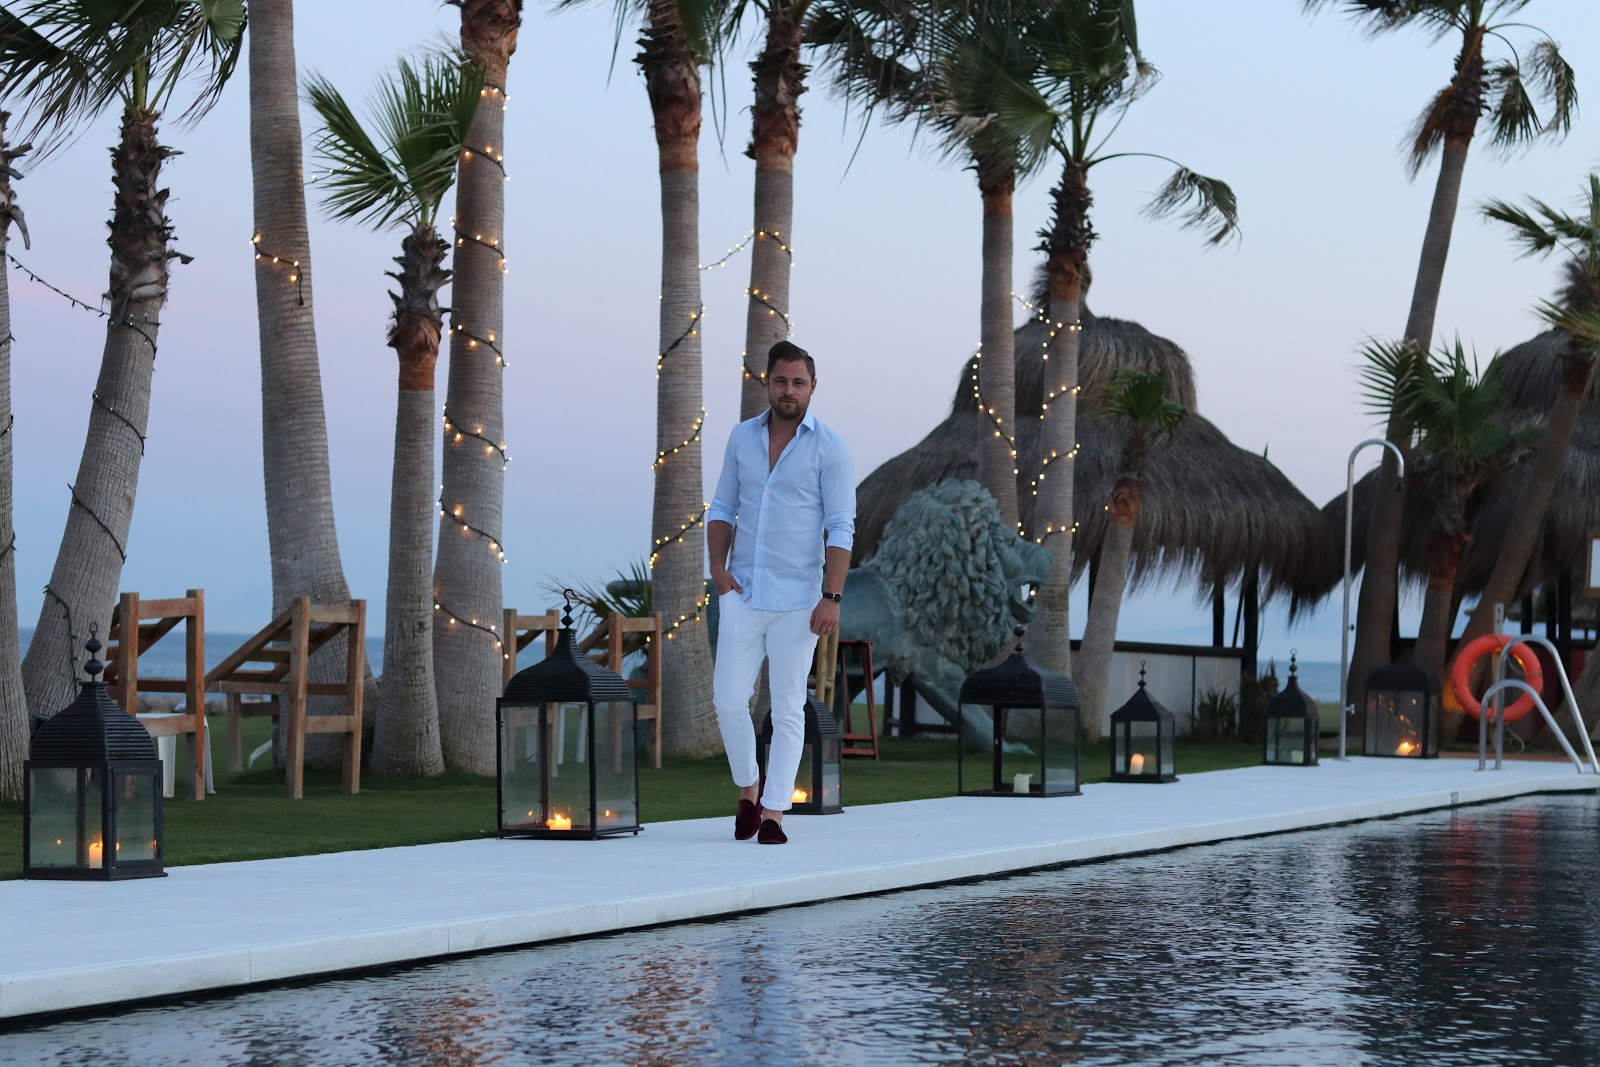 Ben Heath and a Sunset against Palm Trees at Trocadero in Sotogrande, Spain